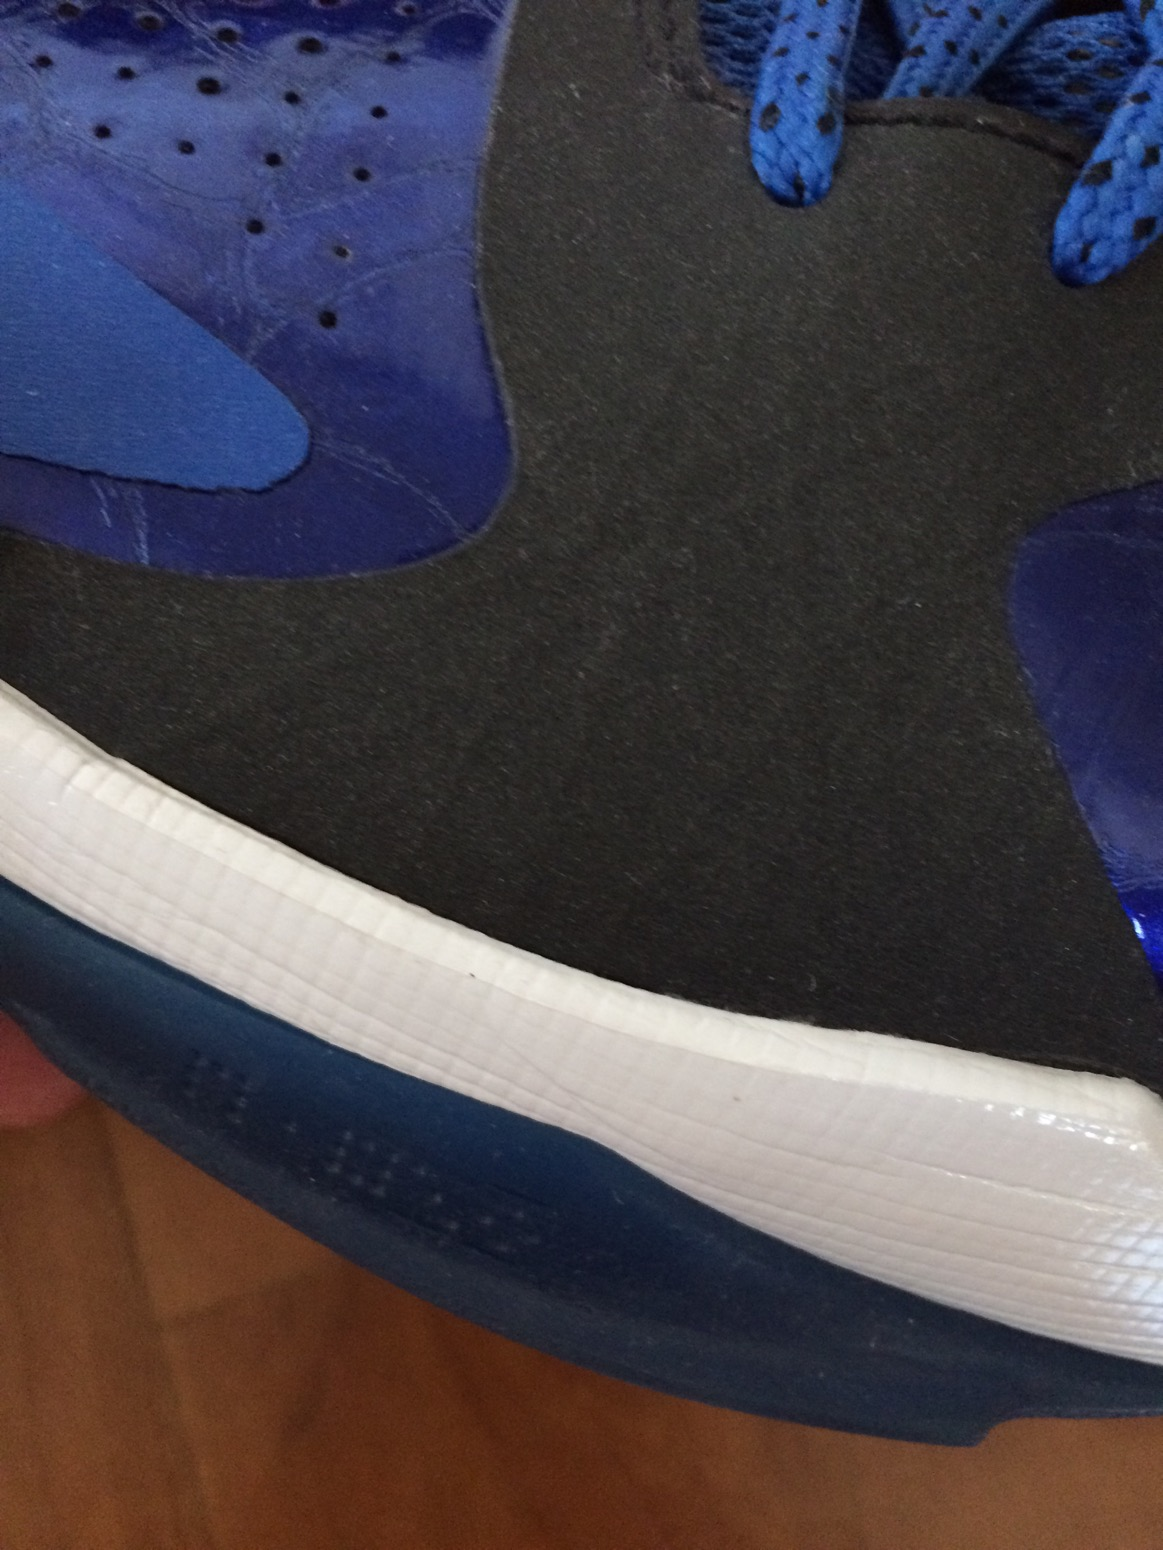 best sneakers 58c5b b0724 I never felt like Id turn my ankle in these and I never have. I wish the  midsole was firmer like the IV but its still great.